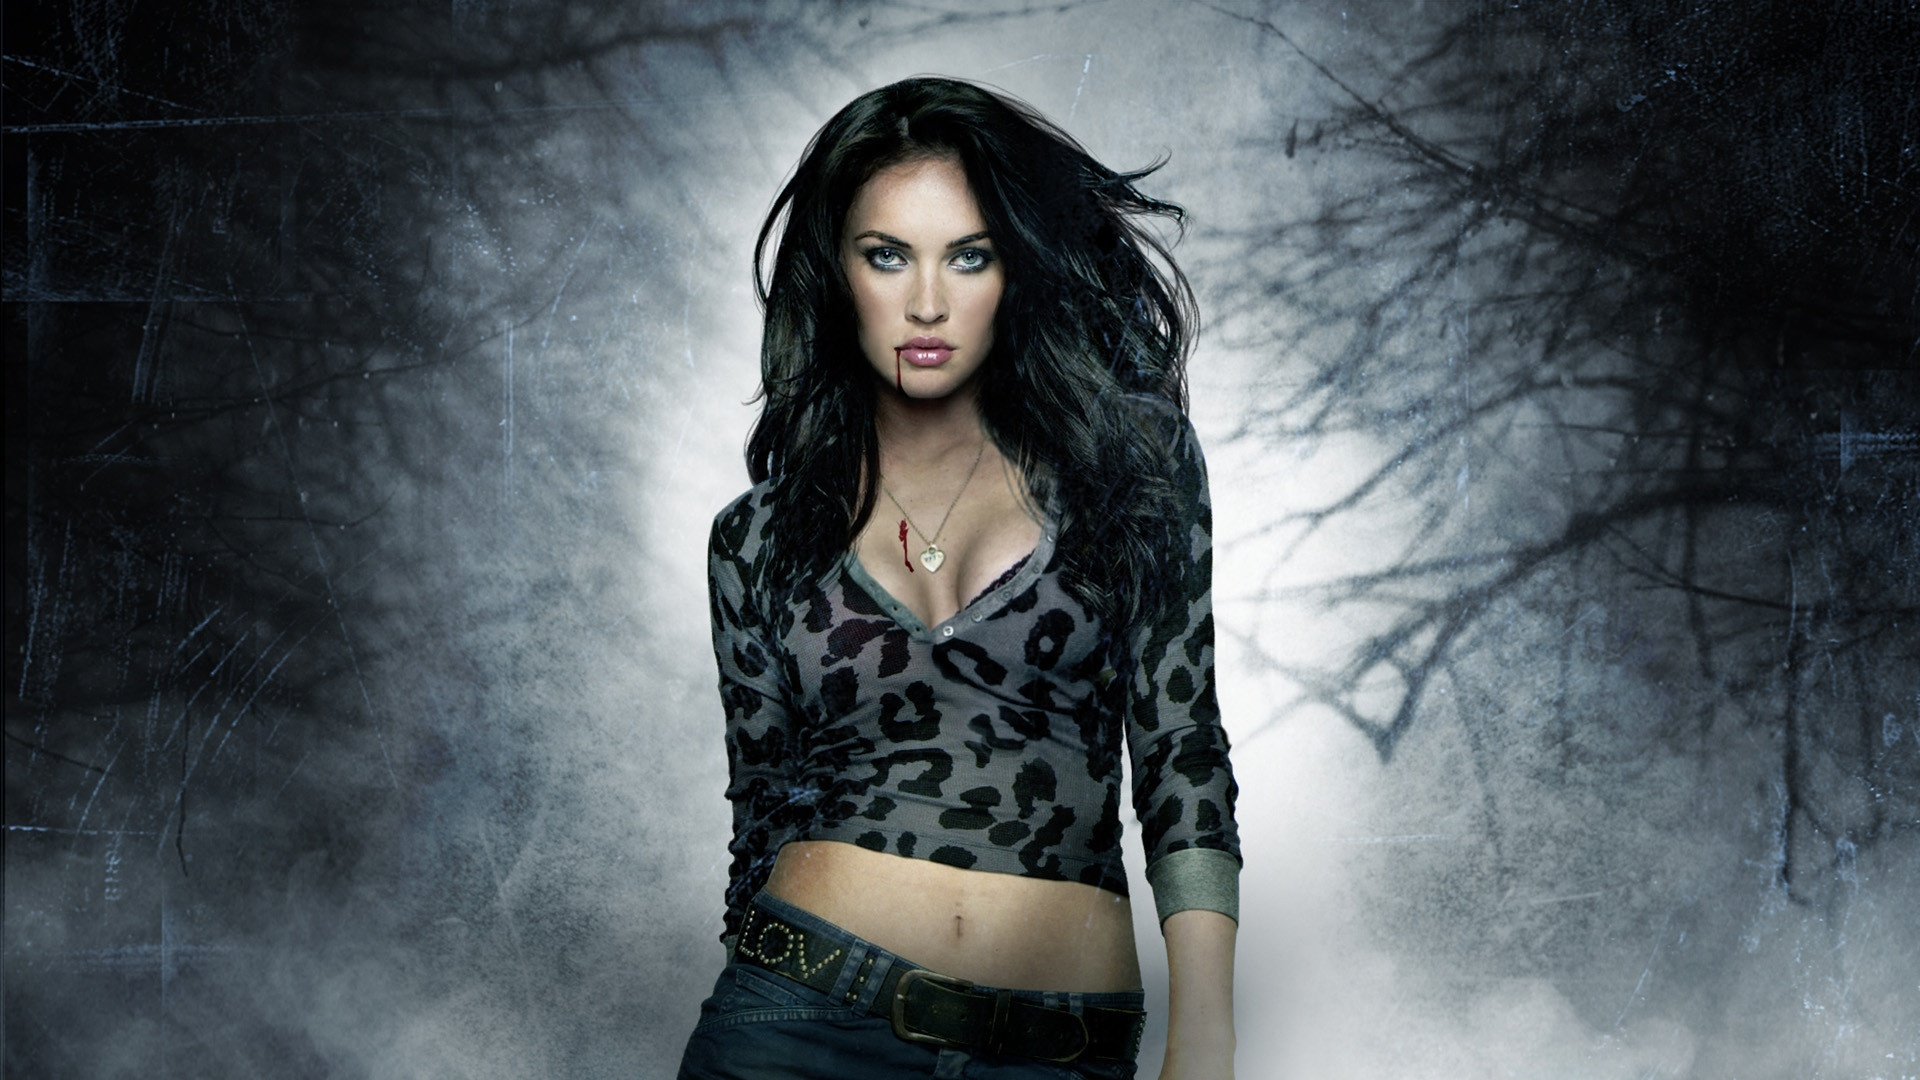 megan fox wallpapers hd A25